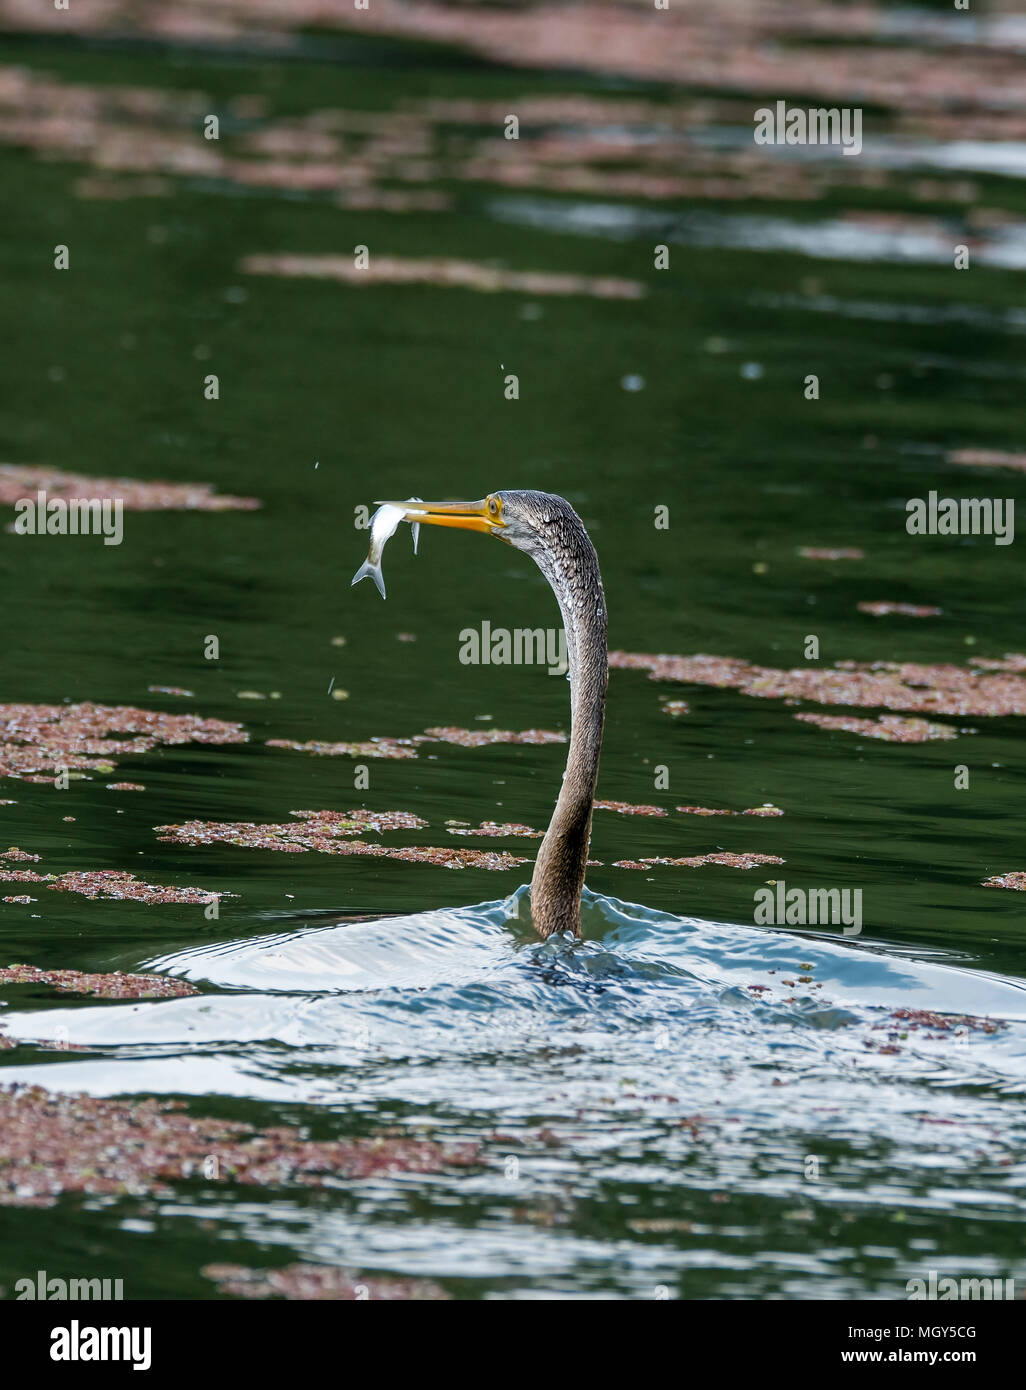 A darter holding a fish in its beak during their daily fishing routine inside bharatpur bird sanctuary - Stock Image